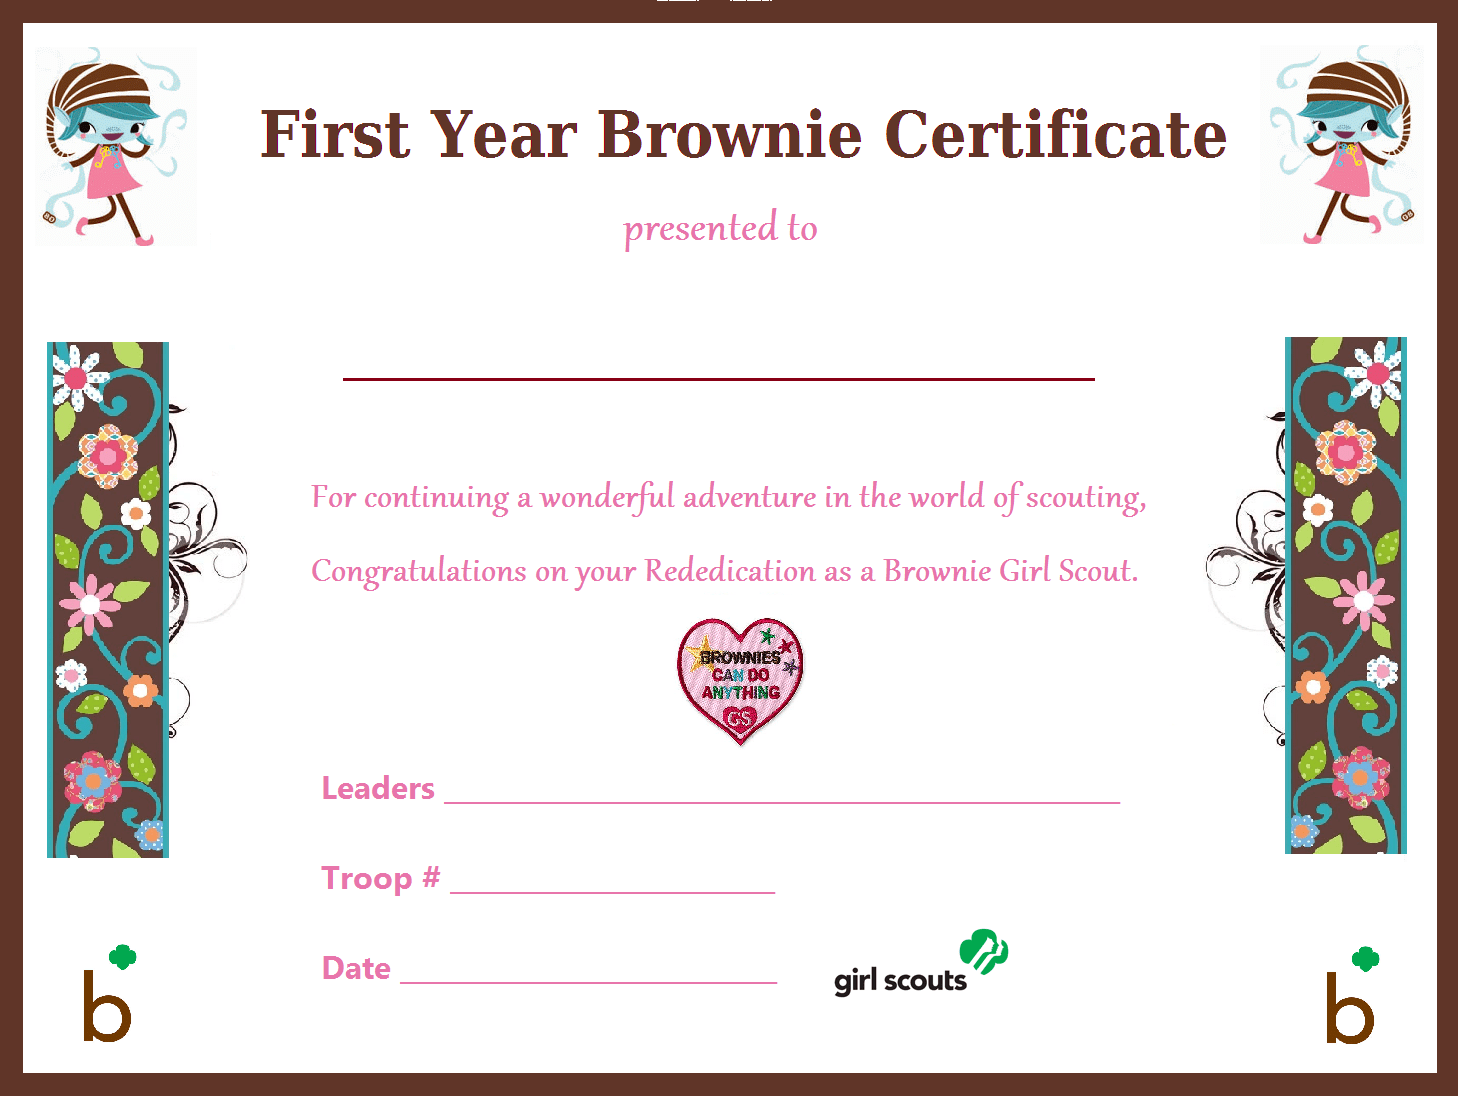 I Made This First Year Brownie Certificate For Our